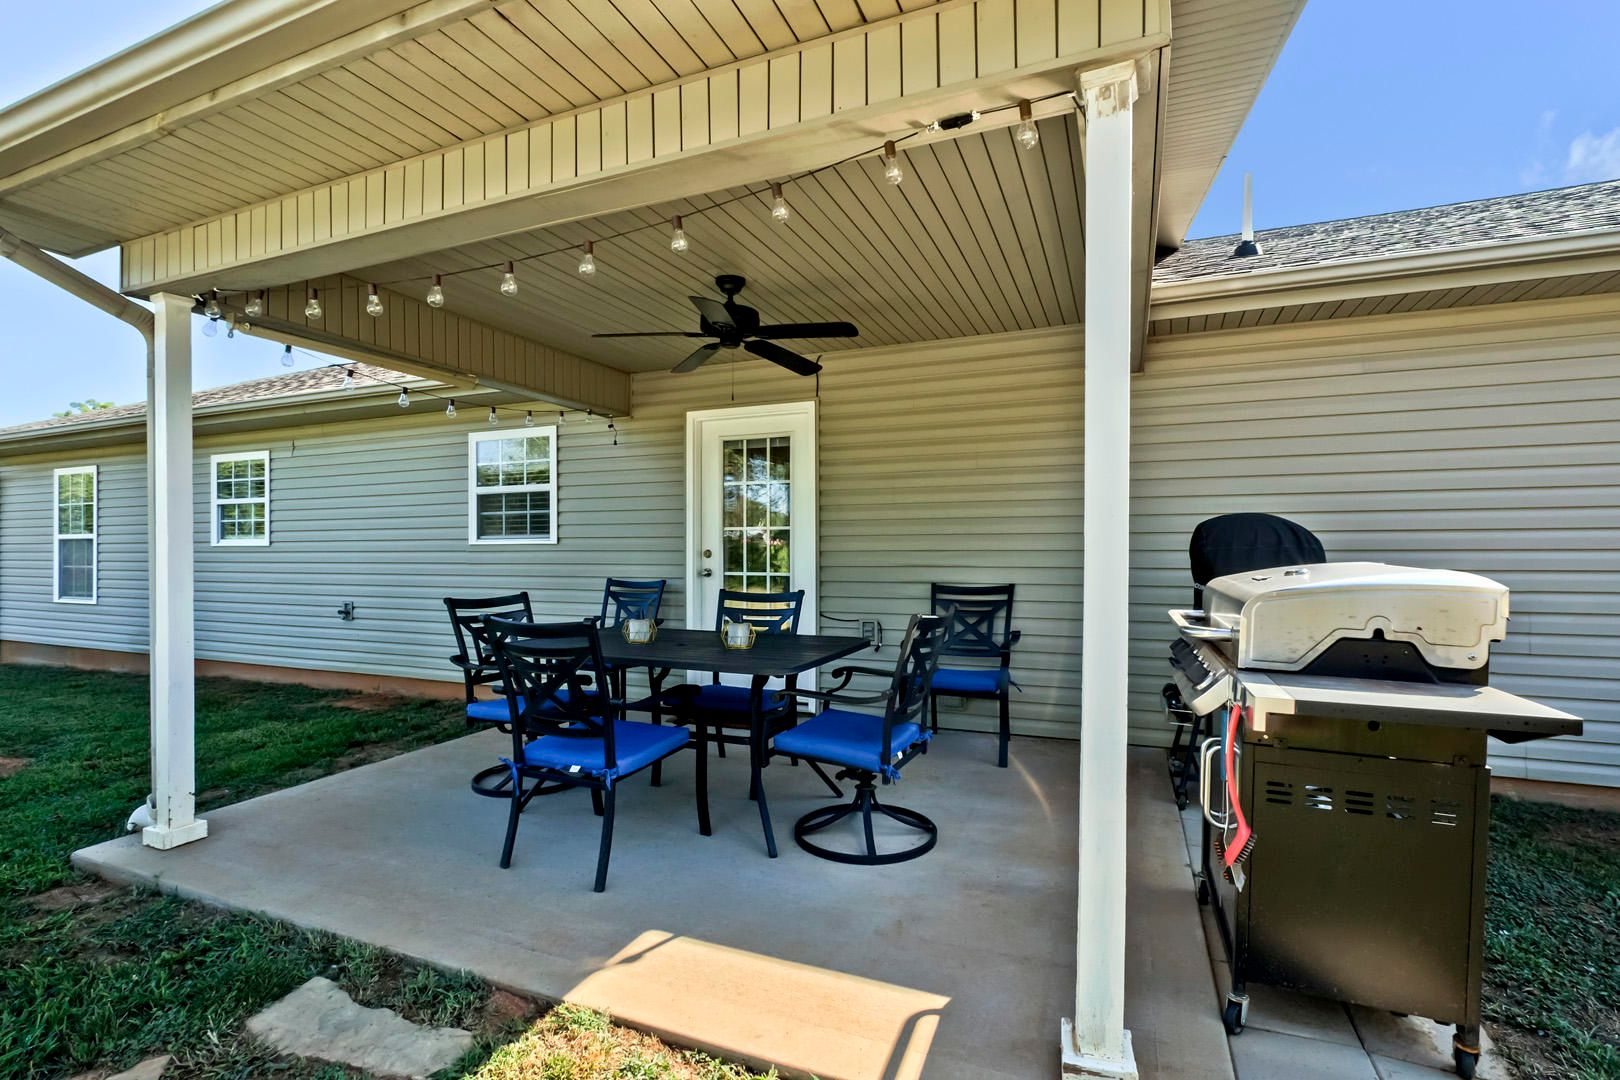 28_PuttersGreenLane_241_CoveredPatio01